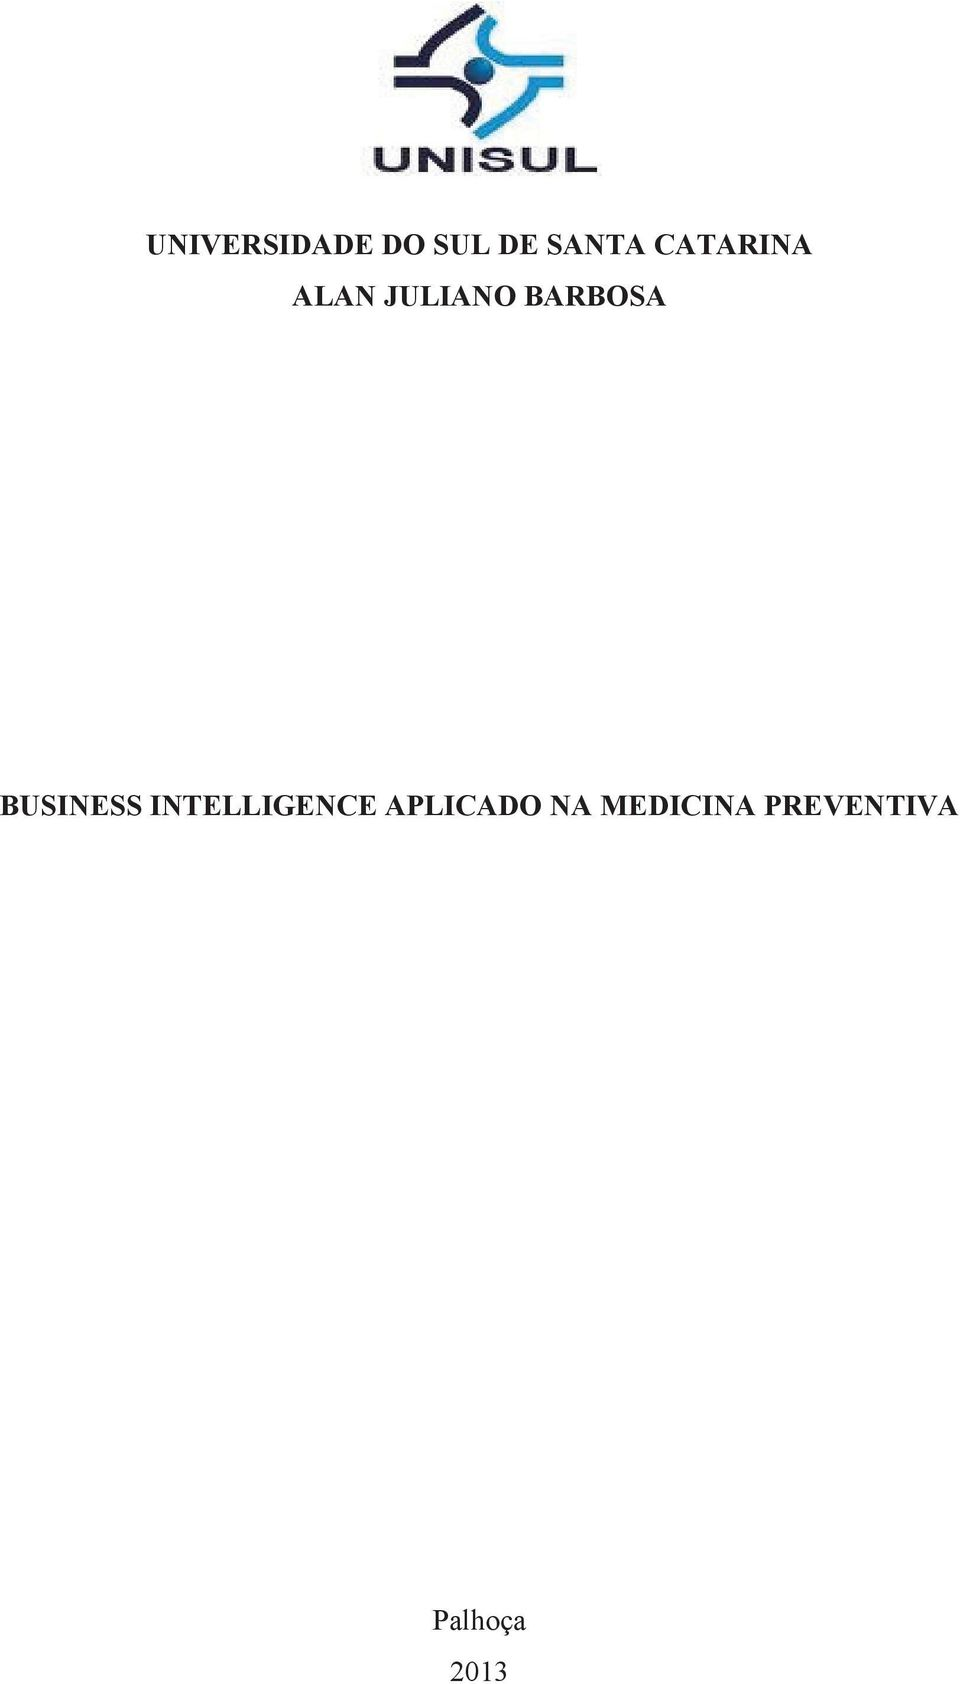 BUSINESS INTELLIGENCE APLICADO